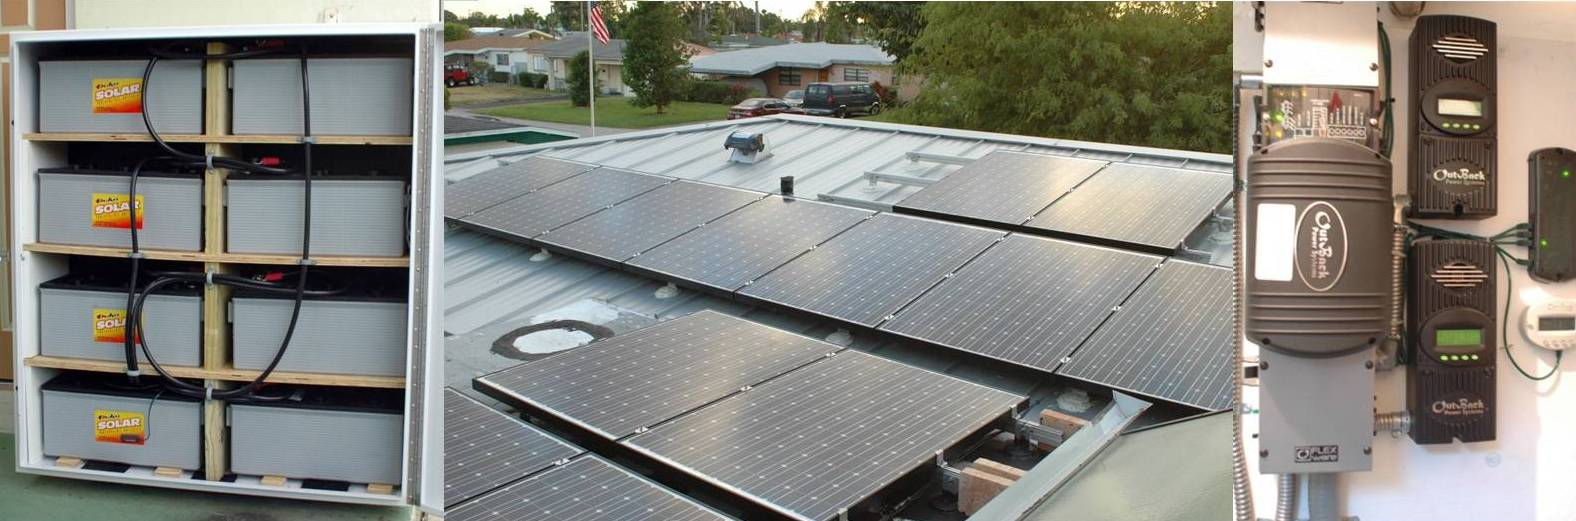 3.3kW Grid-Tied Outback system with 11kWh Battery Back-up - Miramar, Florida